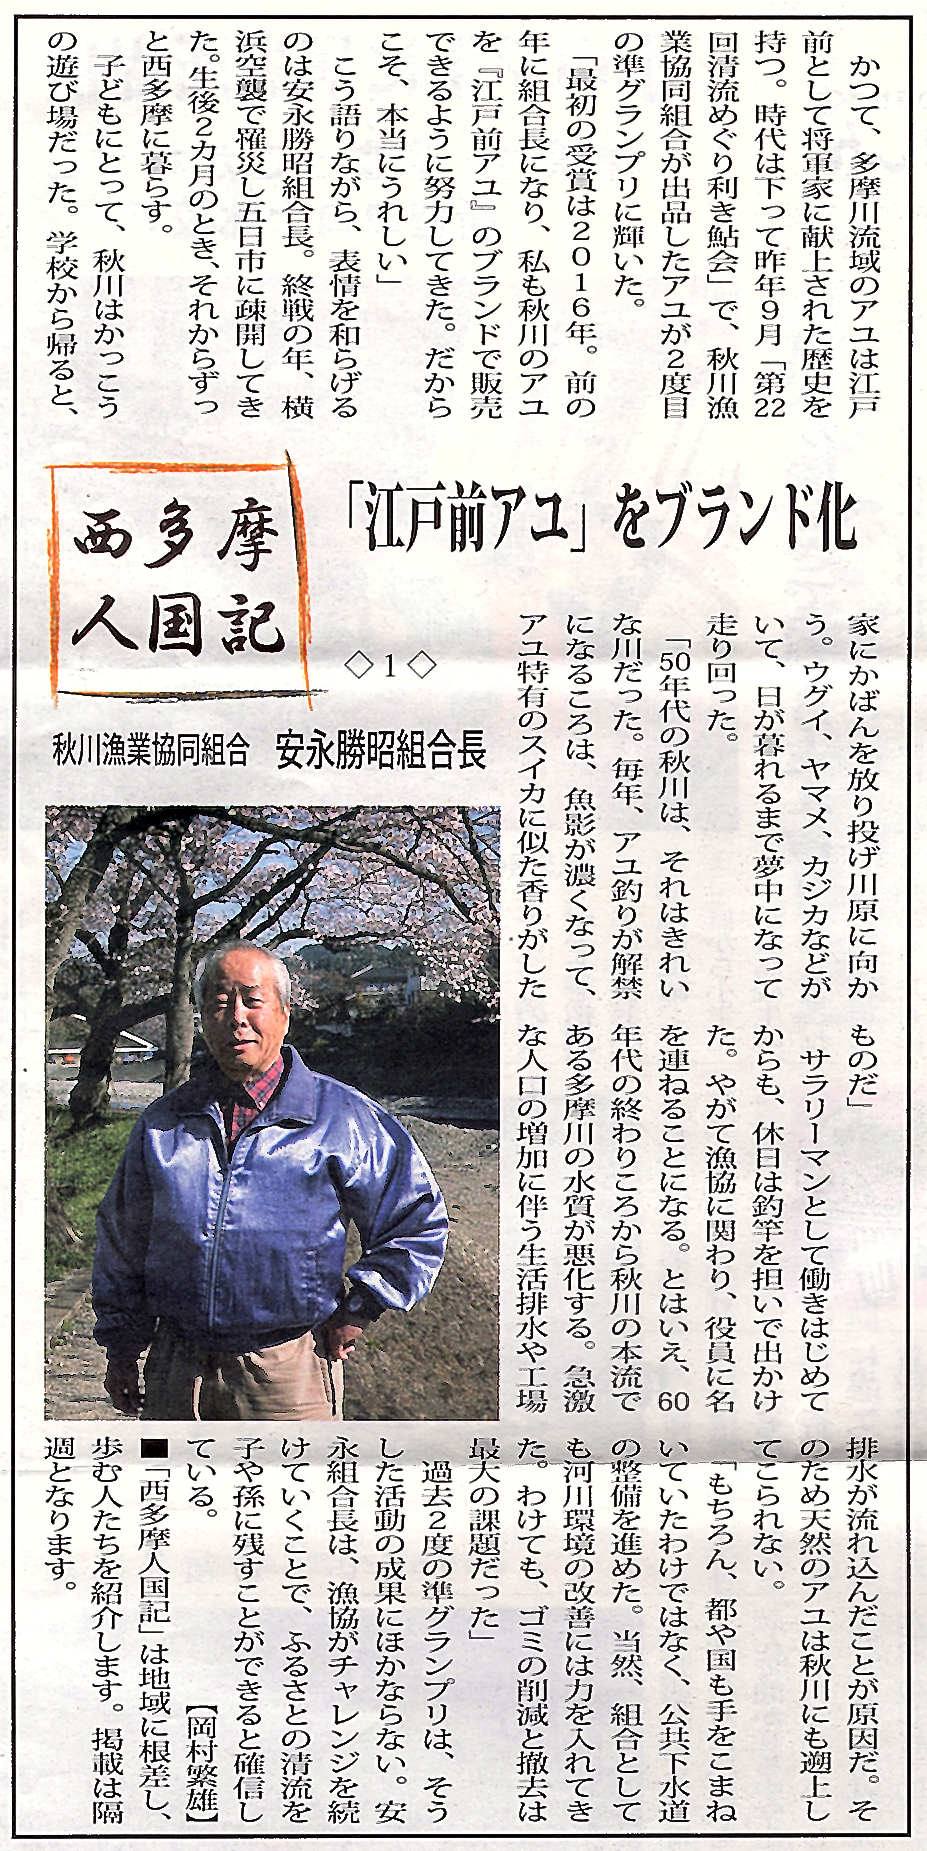 scan20200428_11232555.png